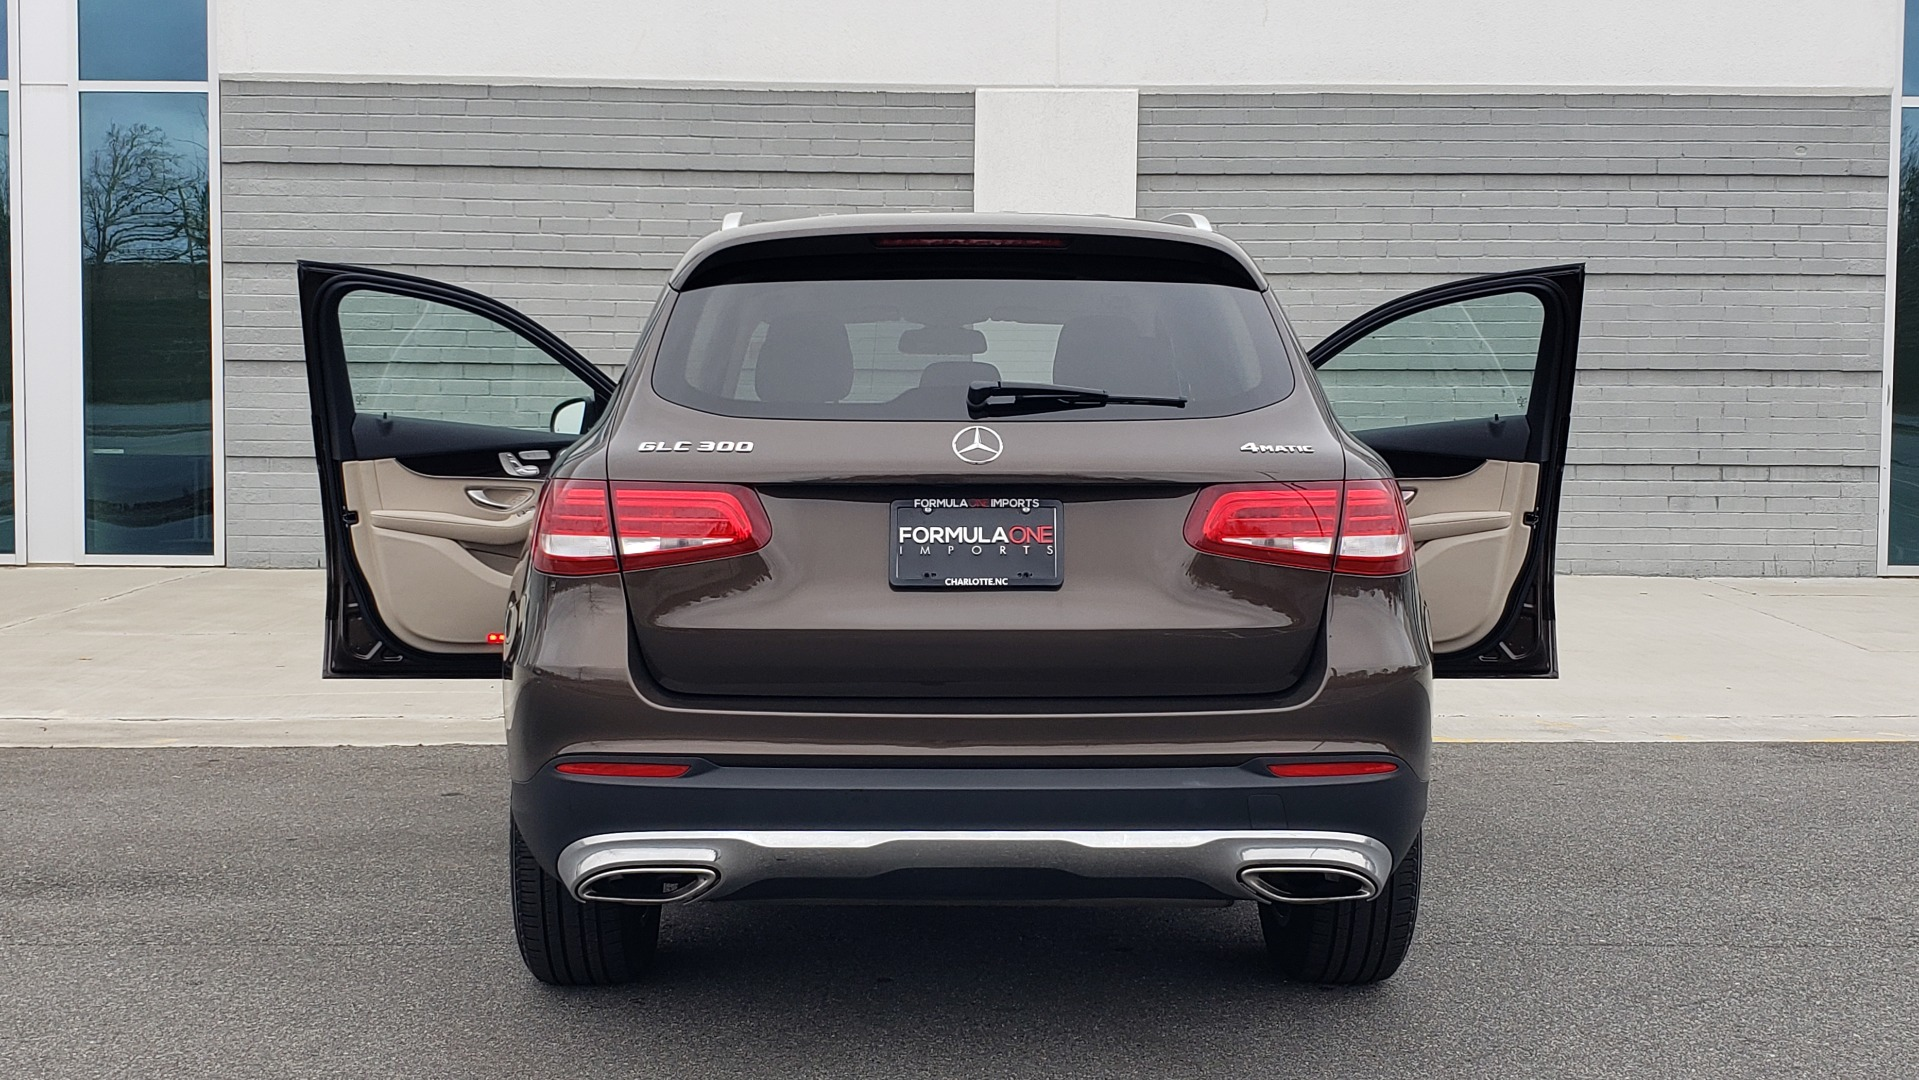 Used 2018 Mercedes-Benz GLC 300 4MATIC / PREM PKG / MULTIMEDIA / PANO-ROOF / BURMESTER for sale $33,995 at Formula Imports in Charlotte NC 28227 24